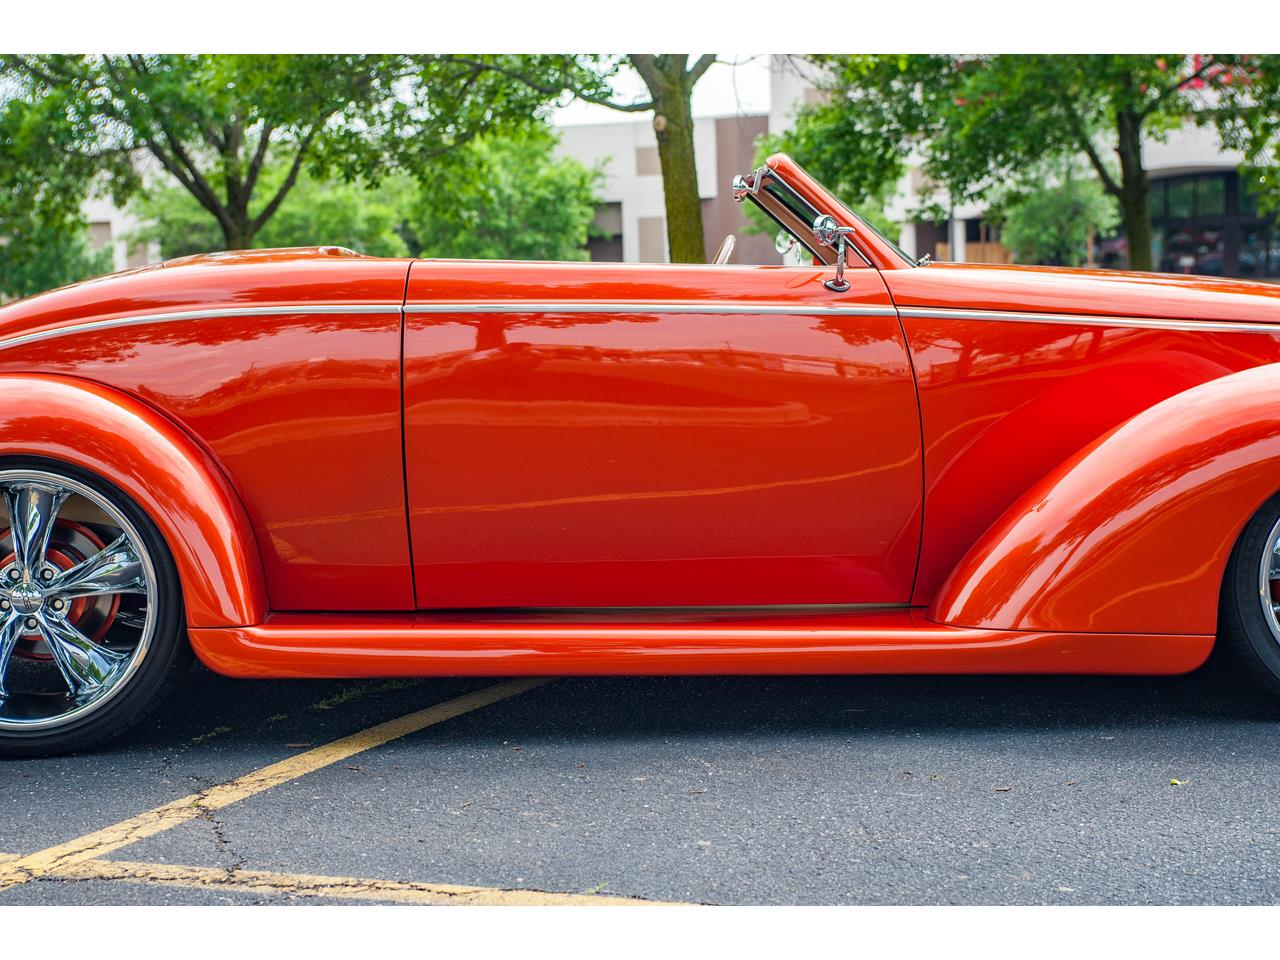 Large Picture of 1936 Ford Roadster located in O'Fallon Illinois - $117,000.00 Offered by Gateway Classic Cars - St. Louis - QB9T